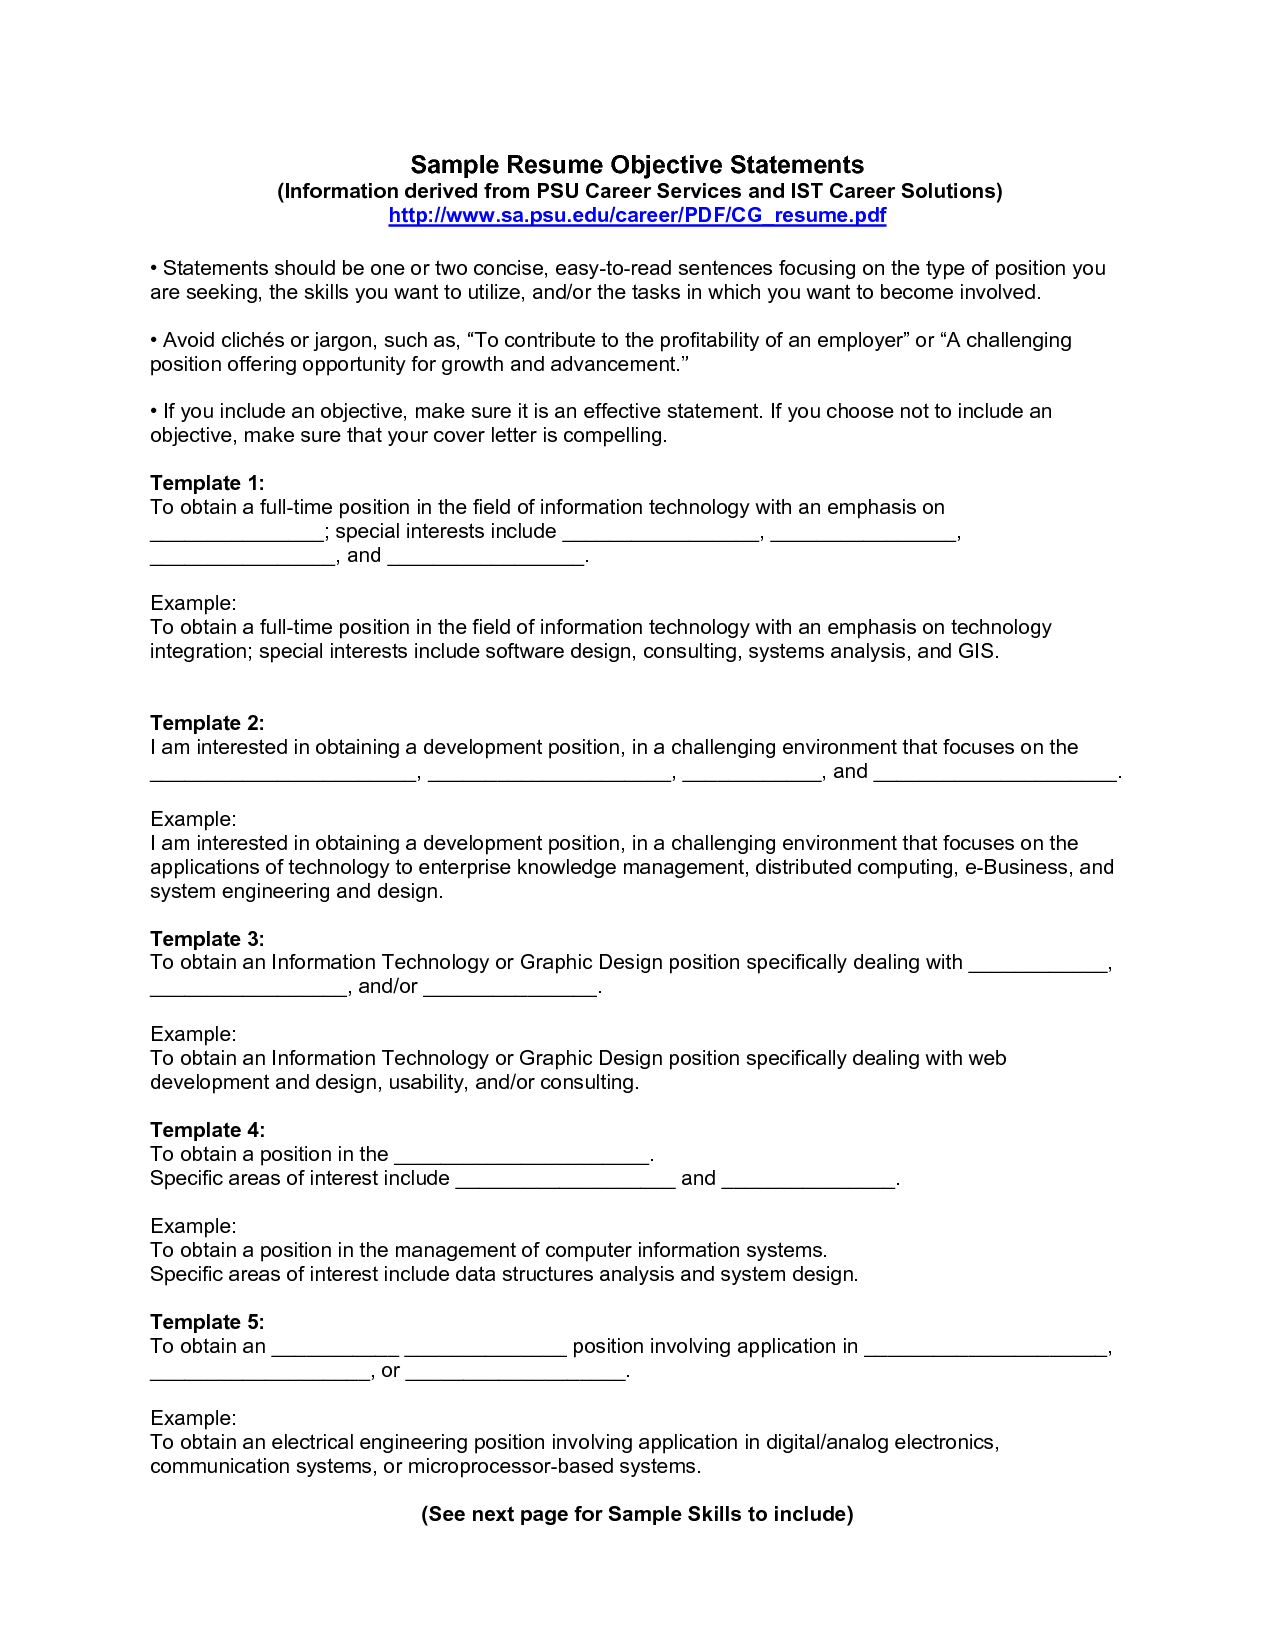 resume objective examples statement and resume career objective statement examples - Objective Examples In A Resume